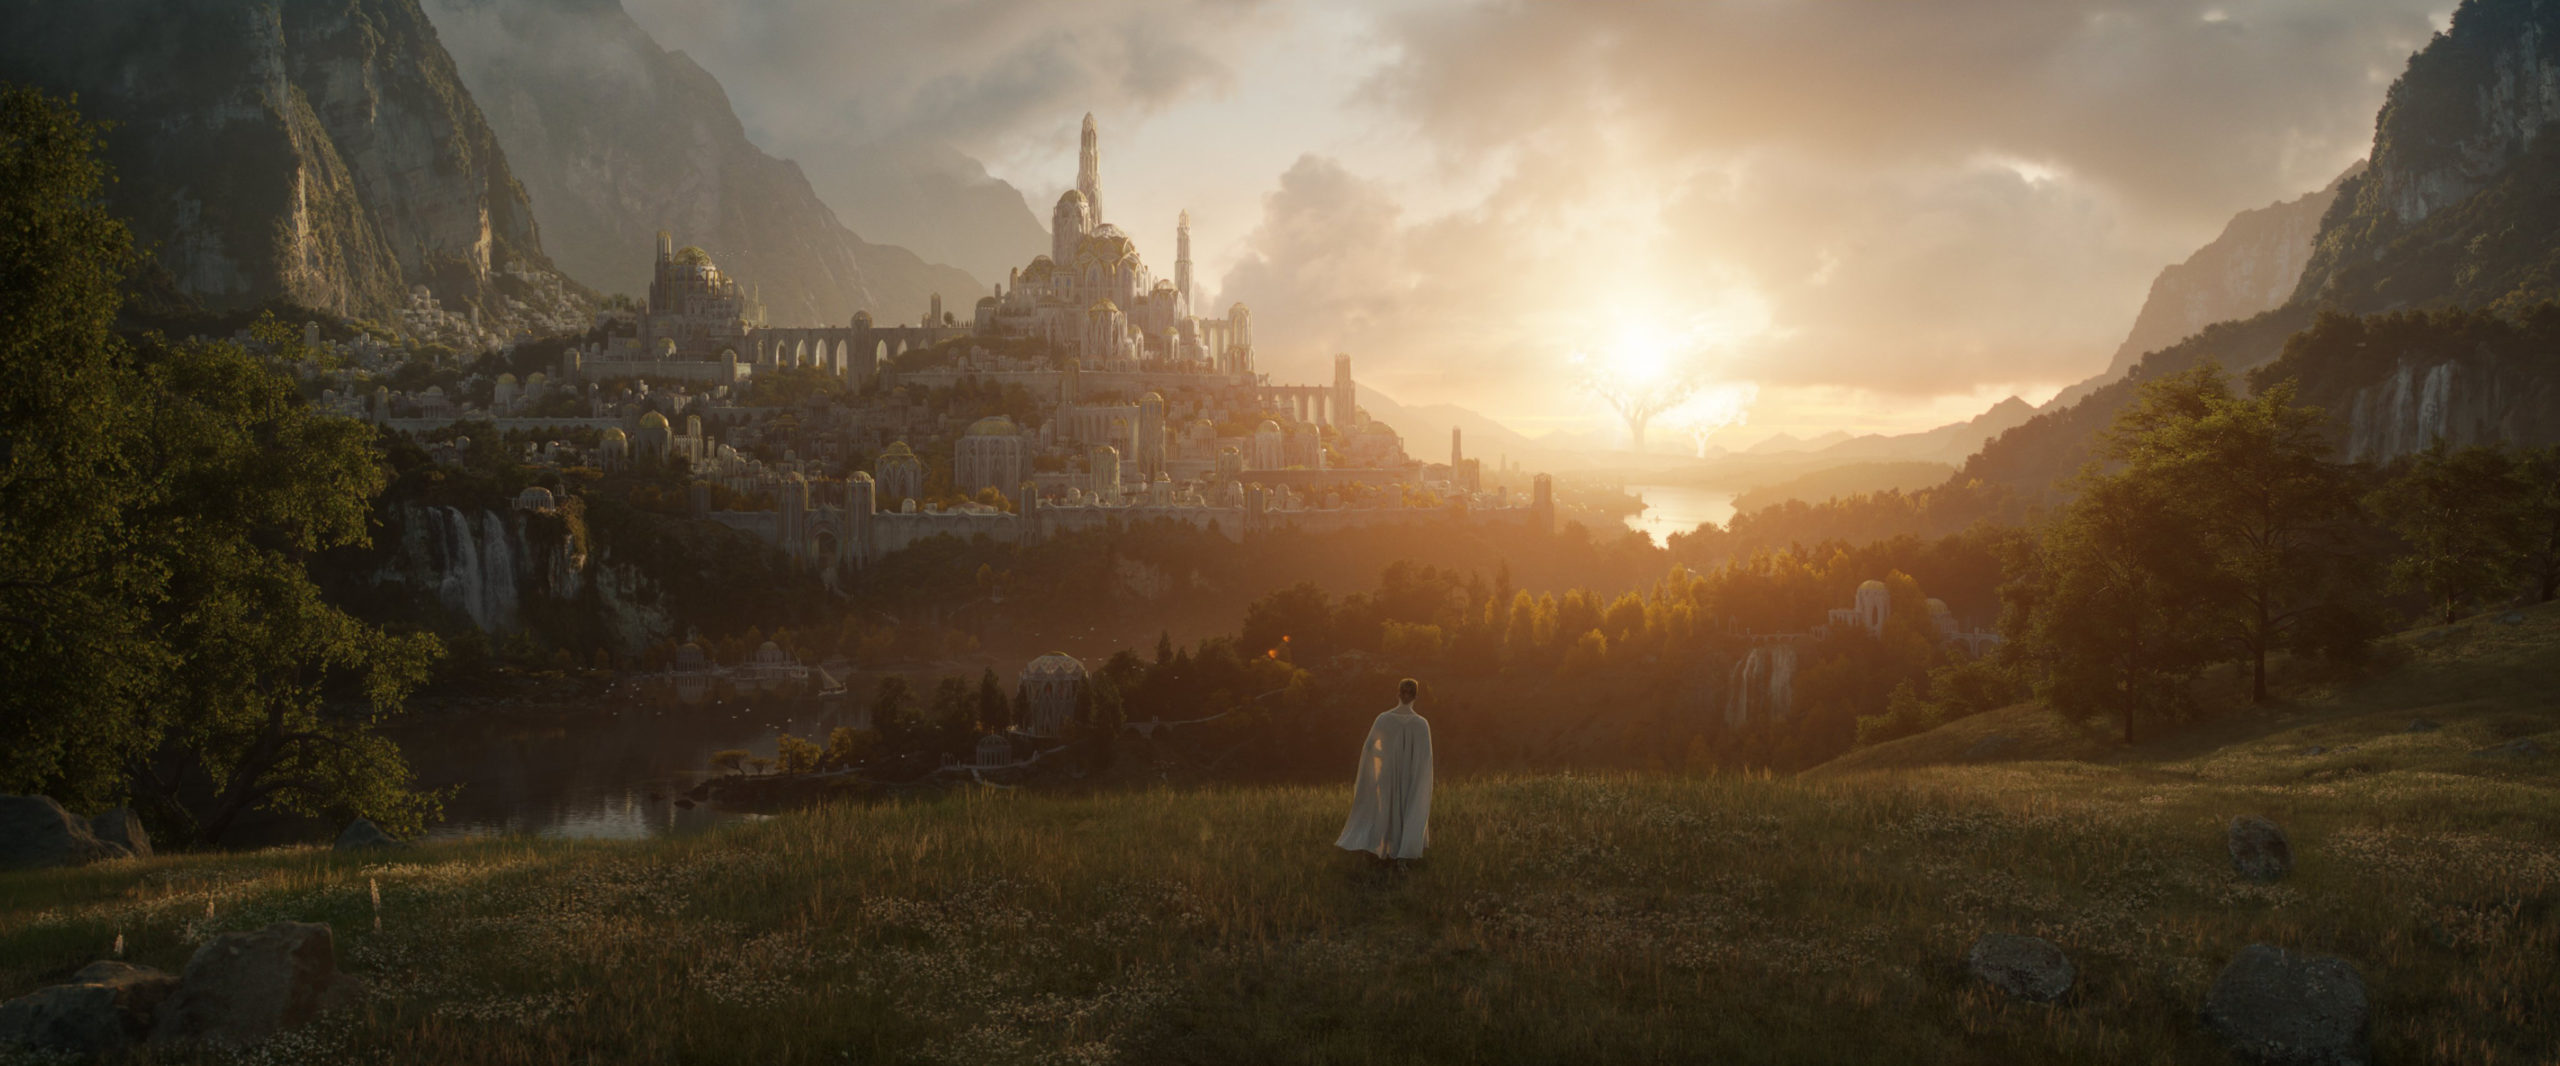 Amazon Lord of the Rings TV Image